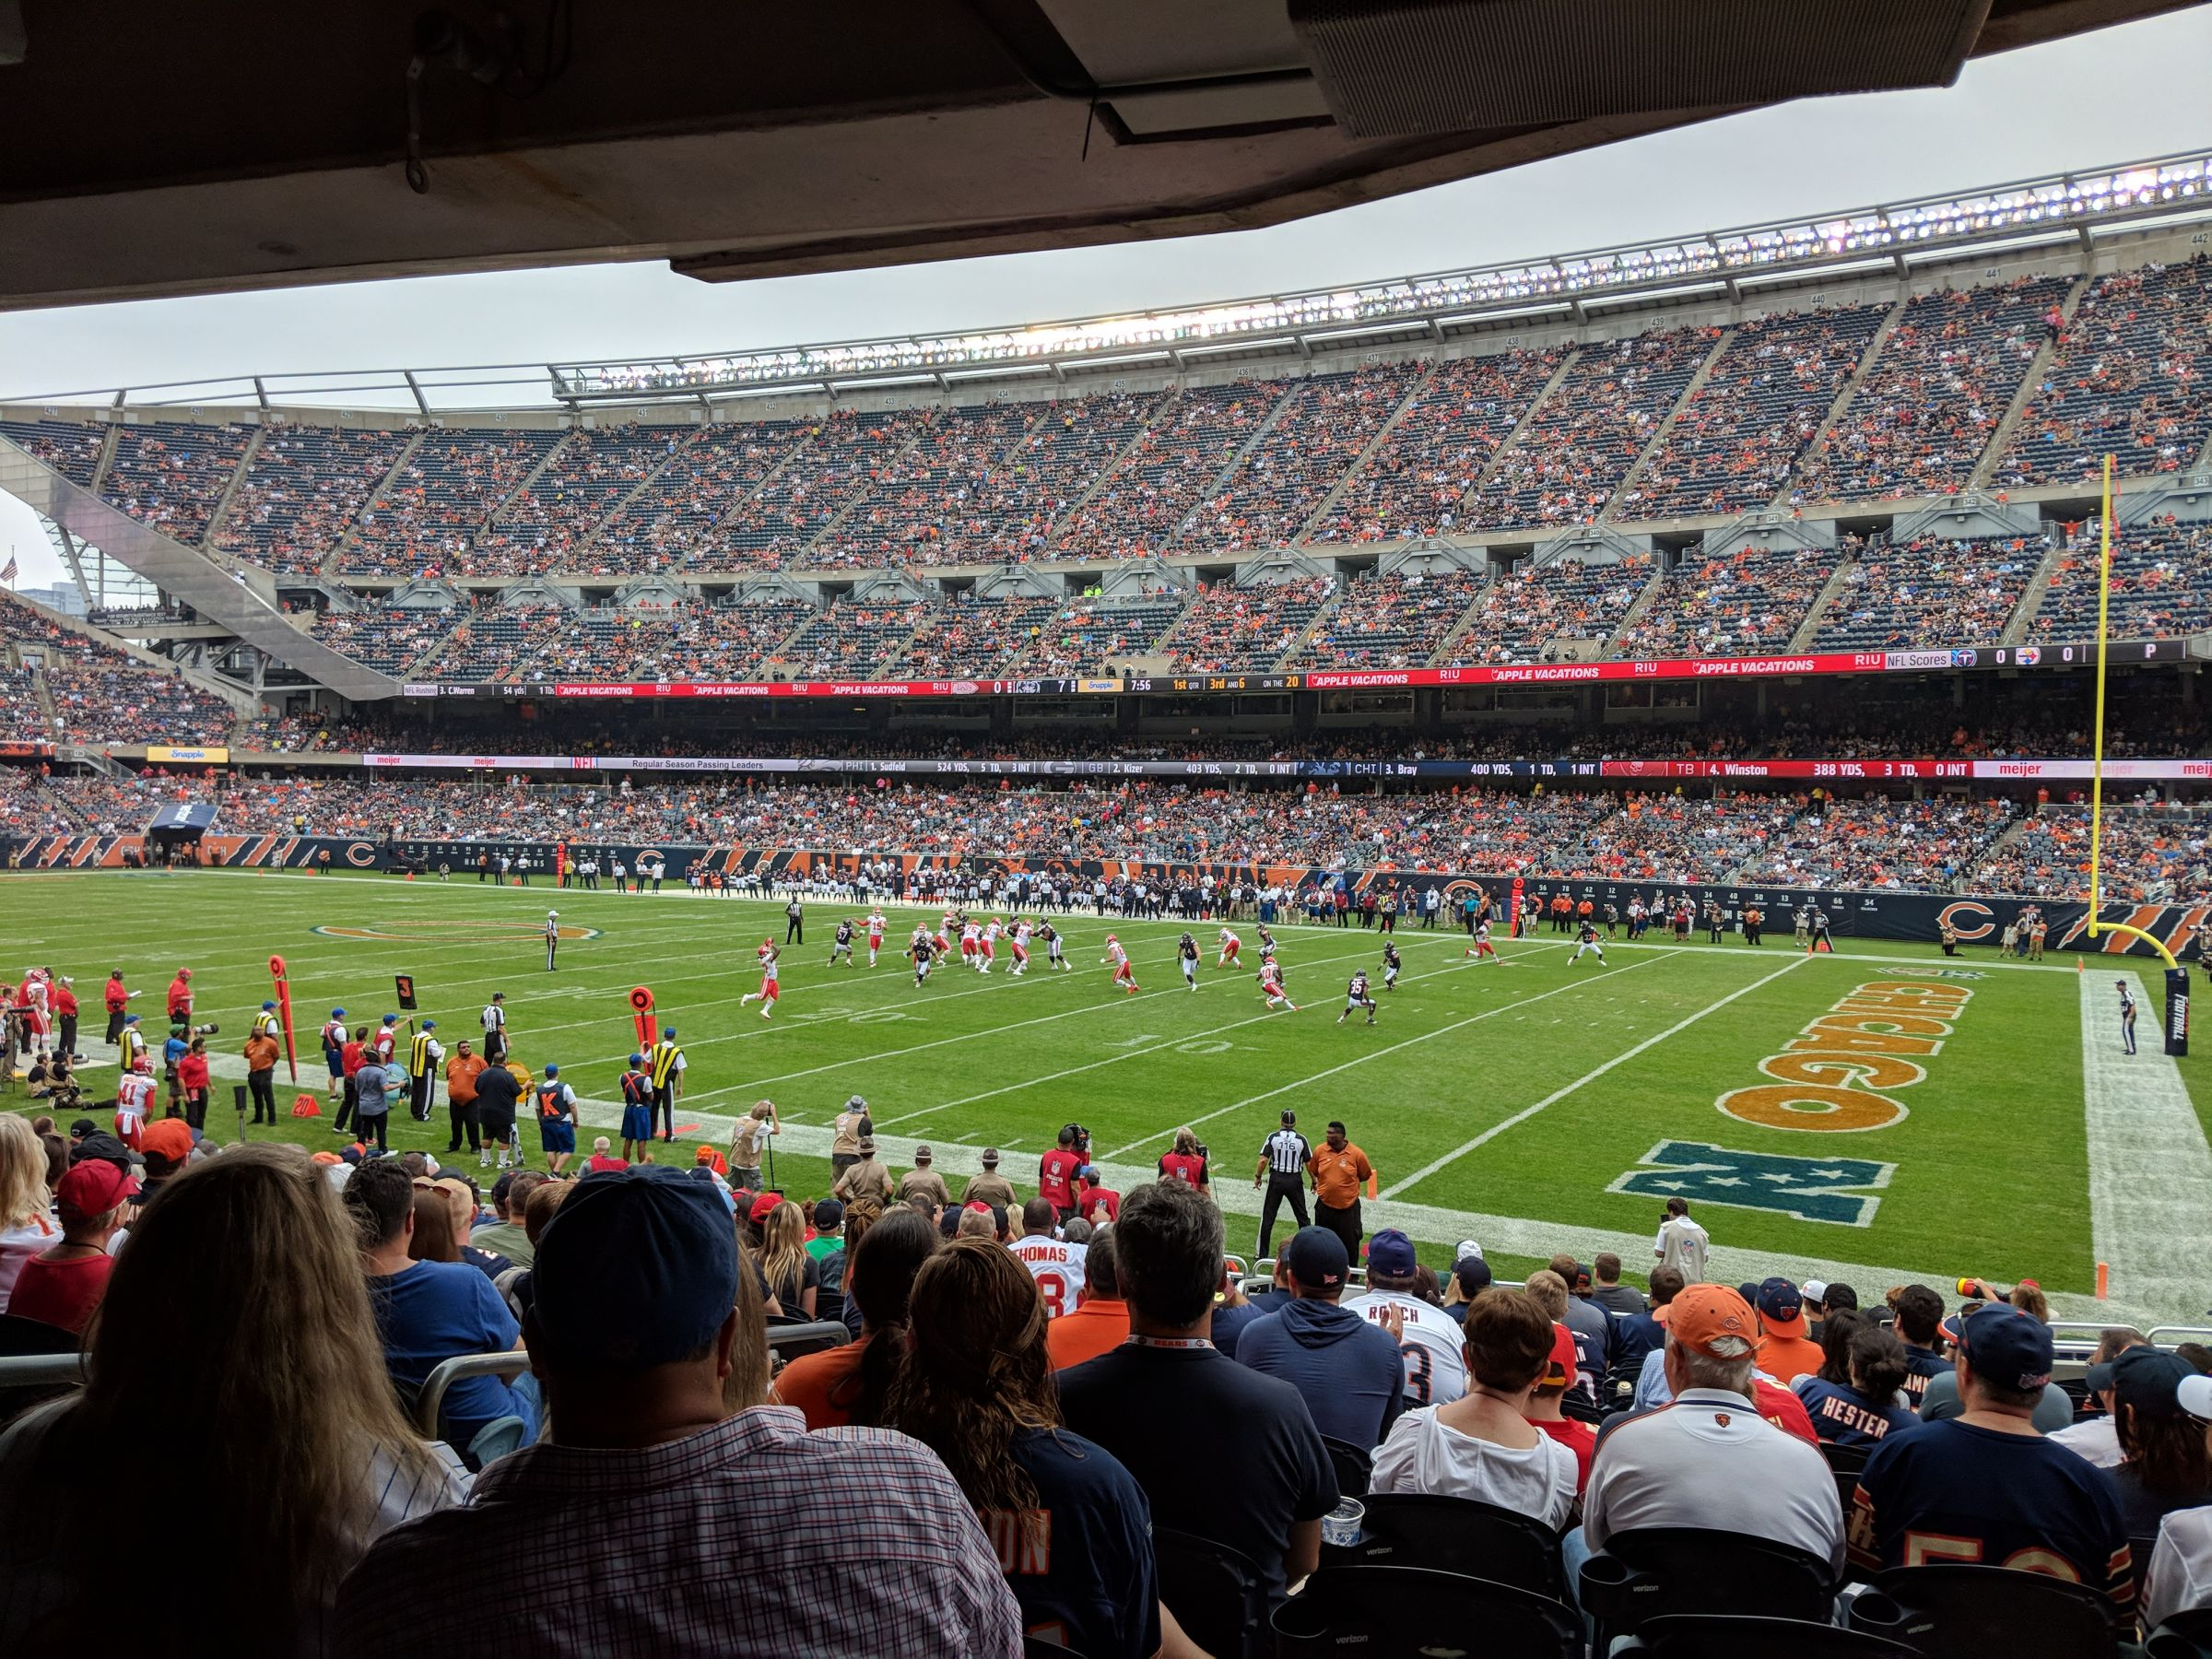 Section 103 seat view